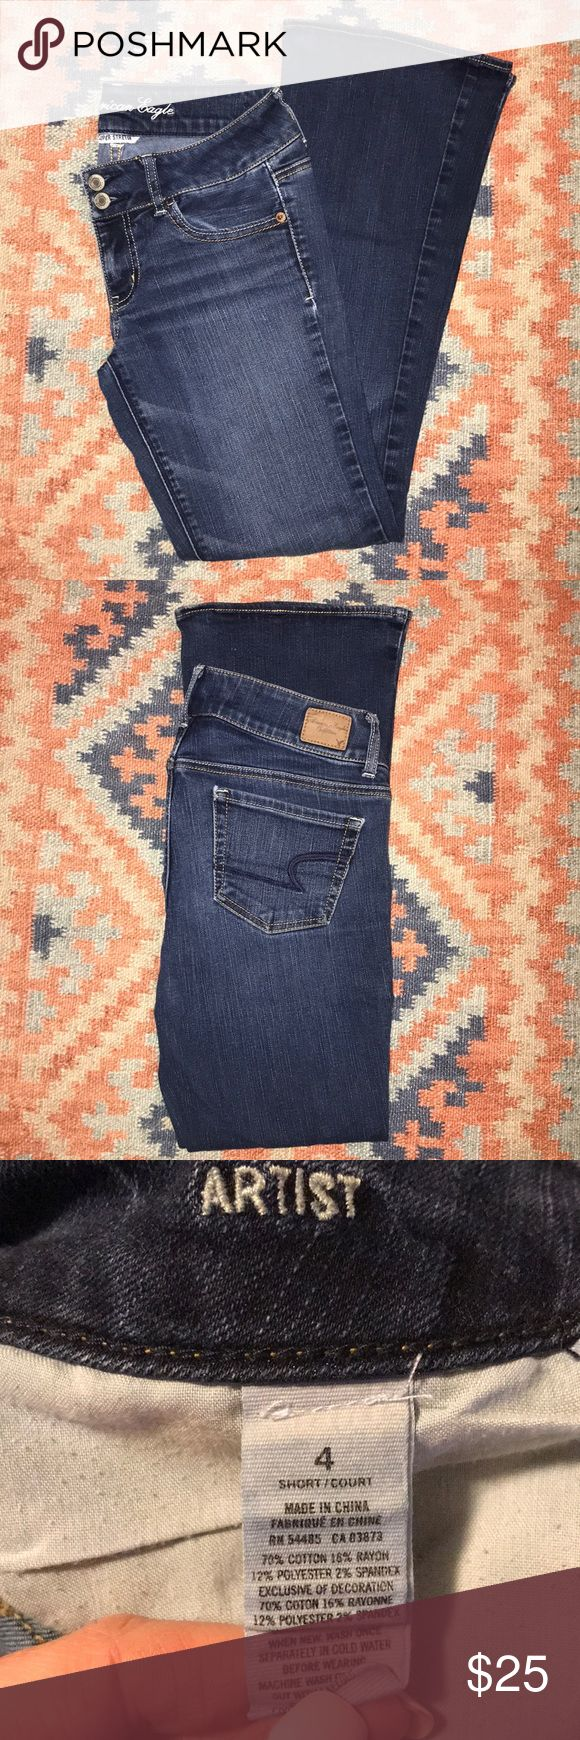 """American Eagle Outfitters Artist Jeans Size 4-Short """"Super ..."""